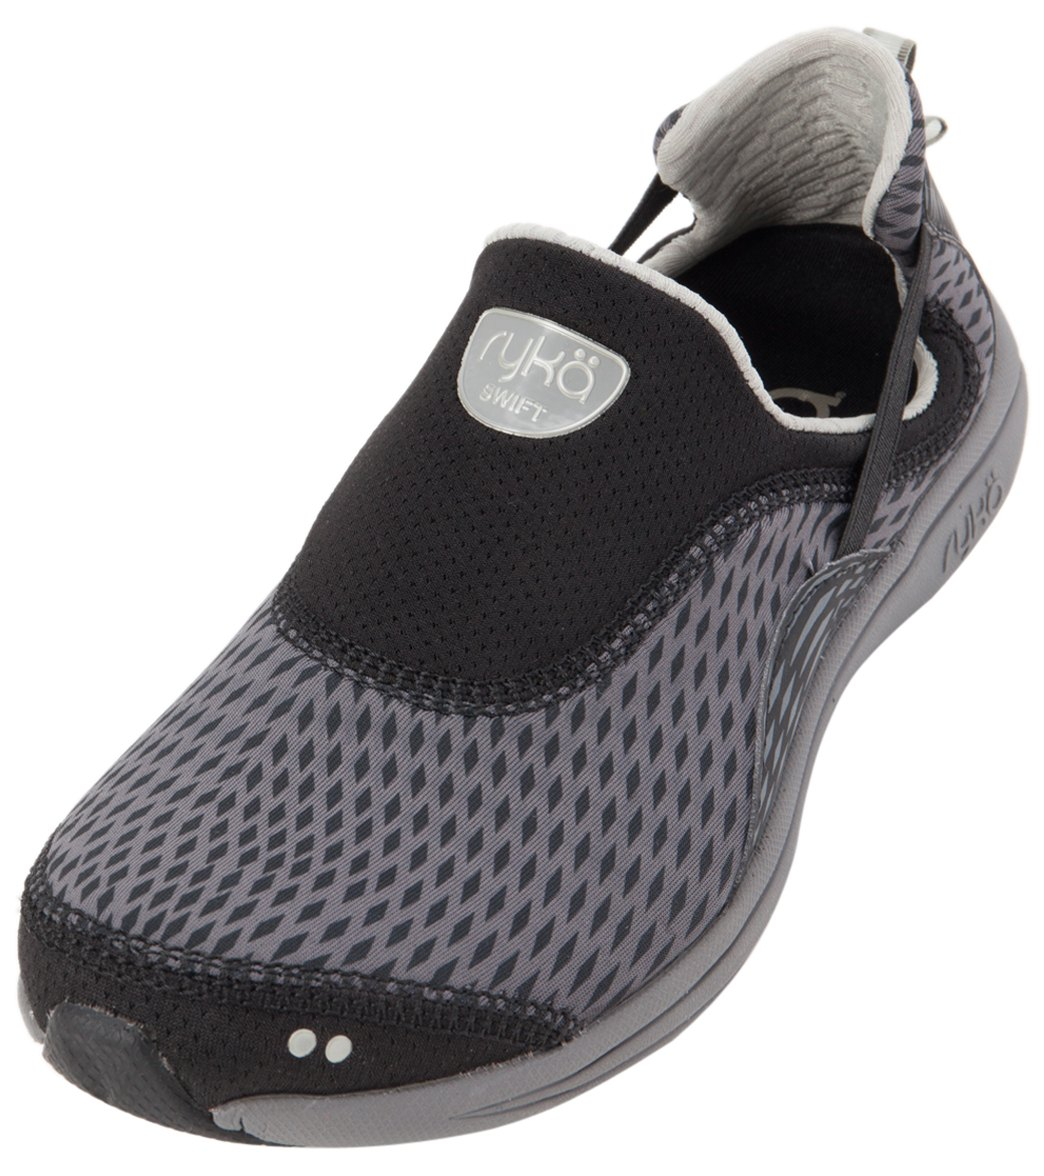 3817fe2f7707 Ryka Women s Swift Slip On Water Shoes at SwimOutlet.com - Free ...